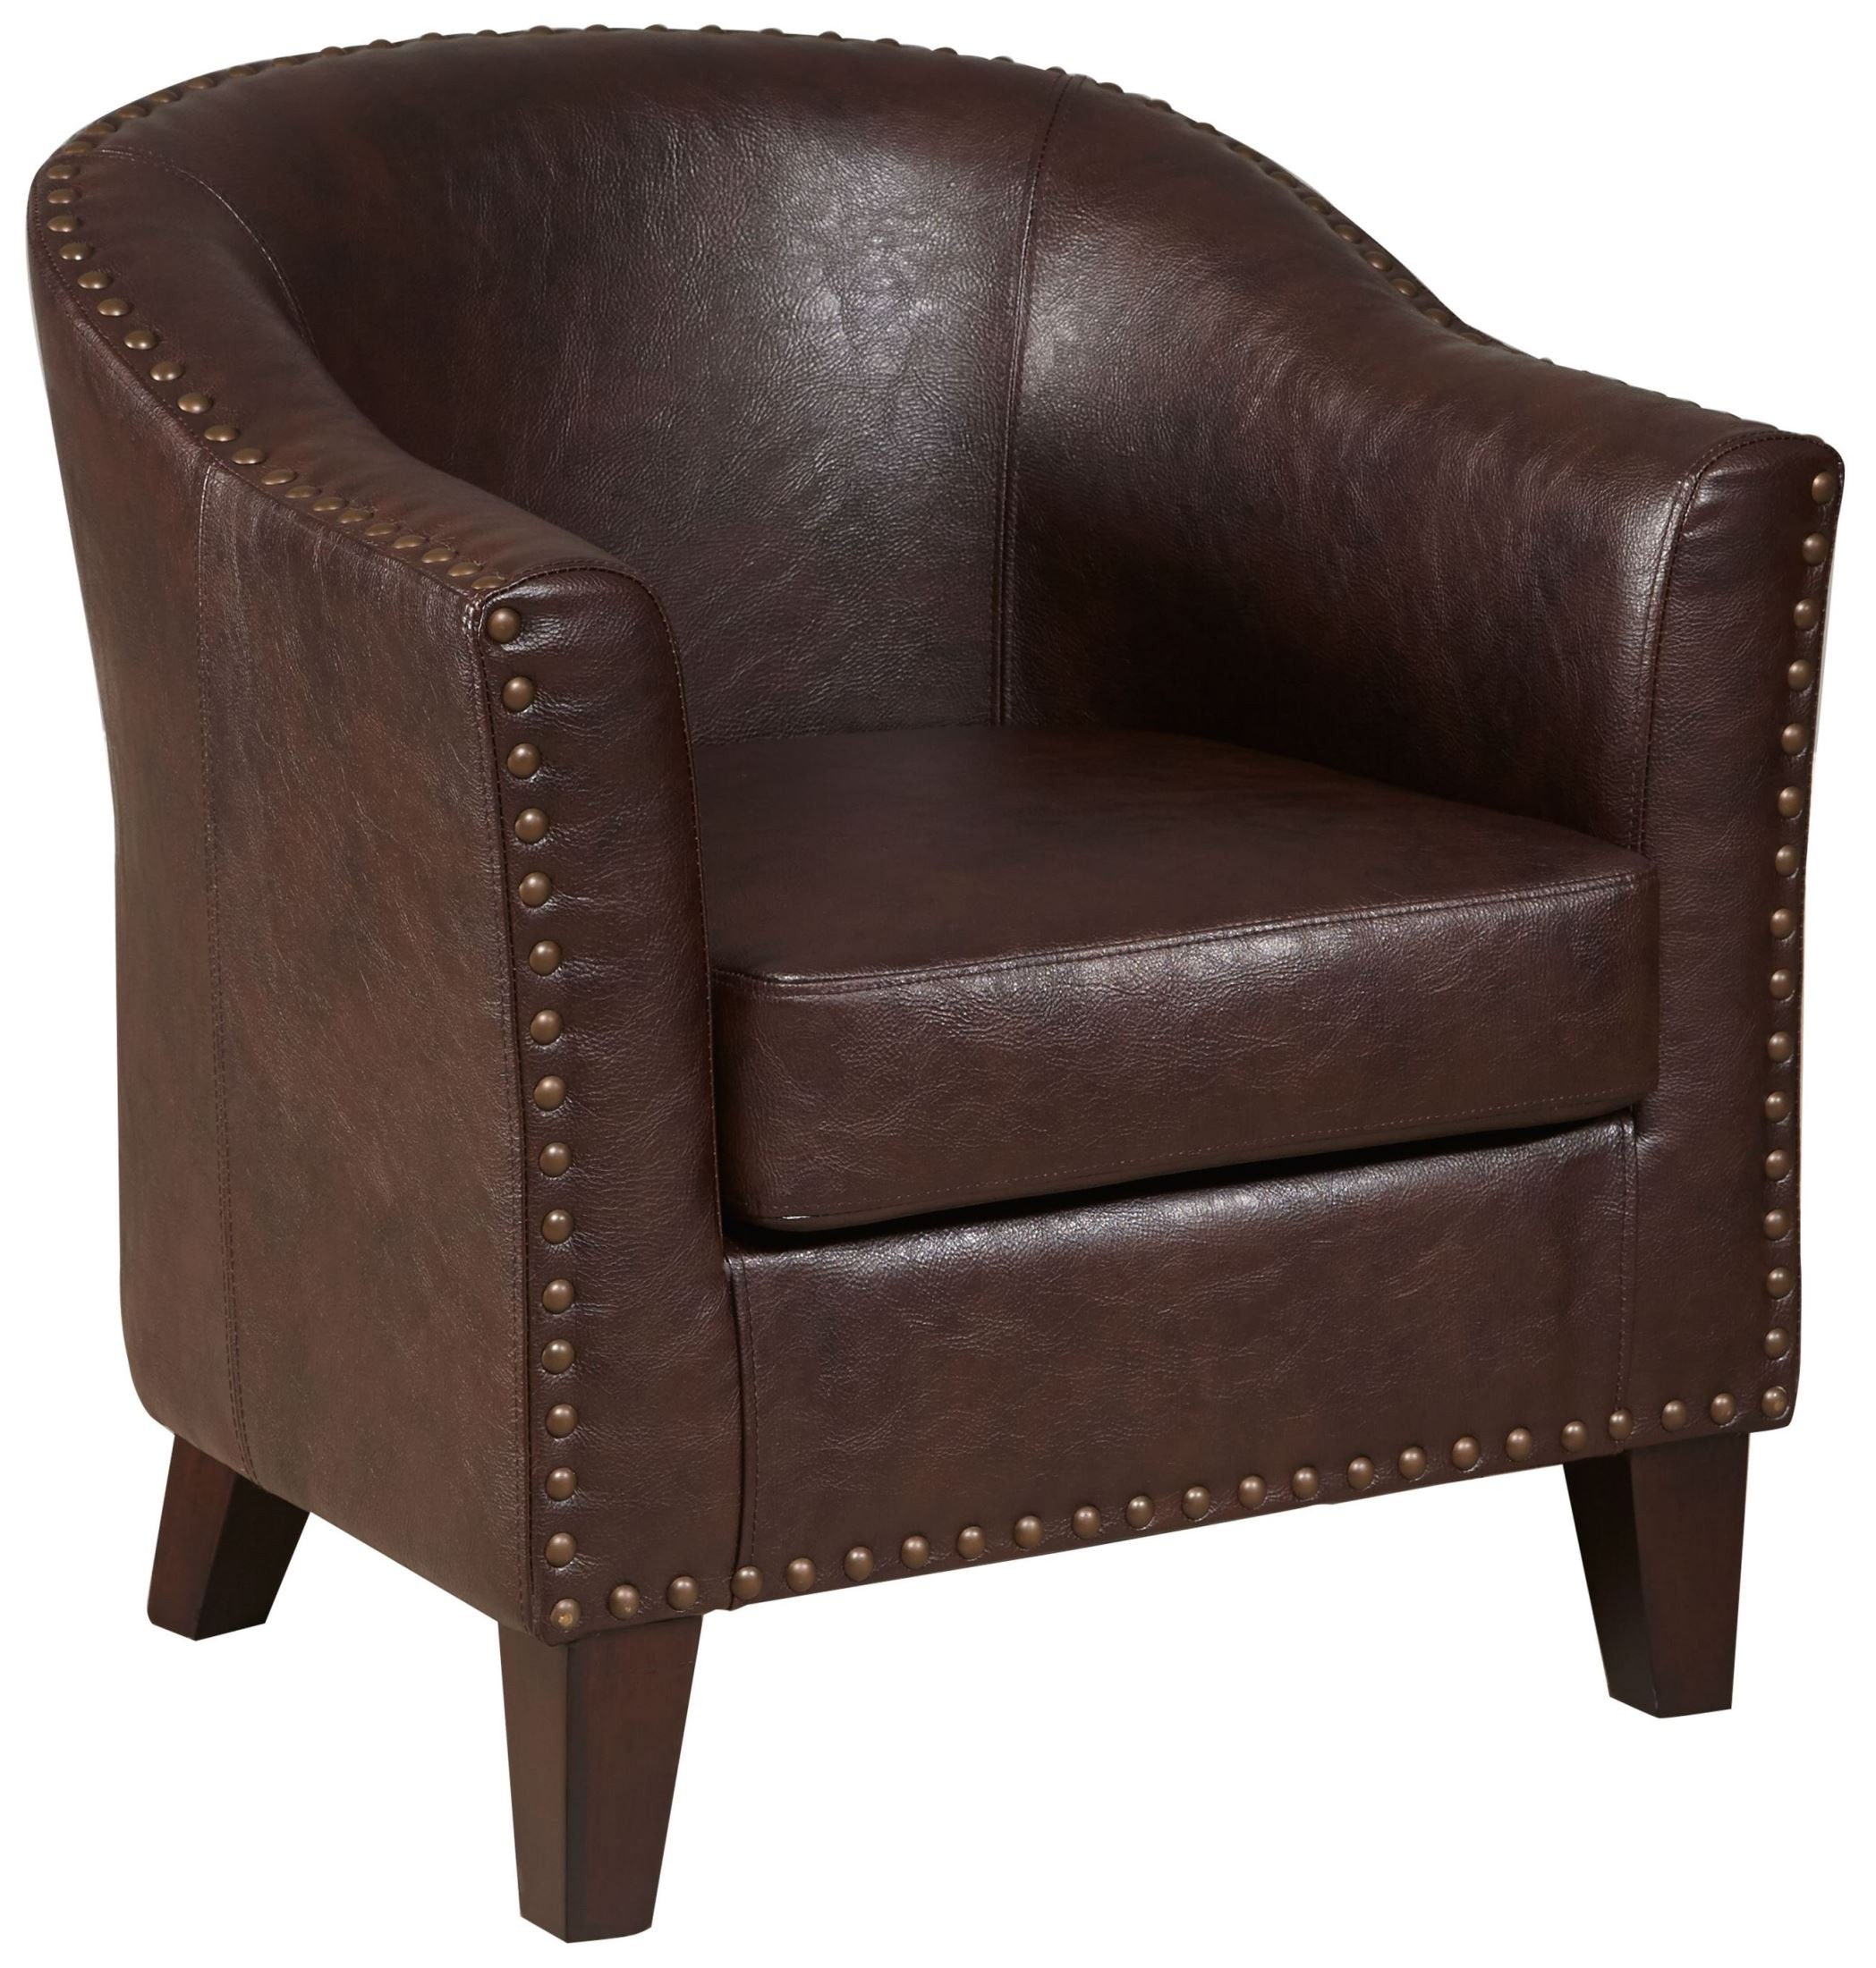 Brown Accent Chairs Traditional Warm Brown Upholstered Accent Chair From